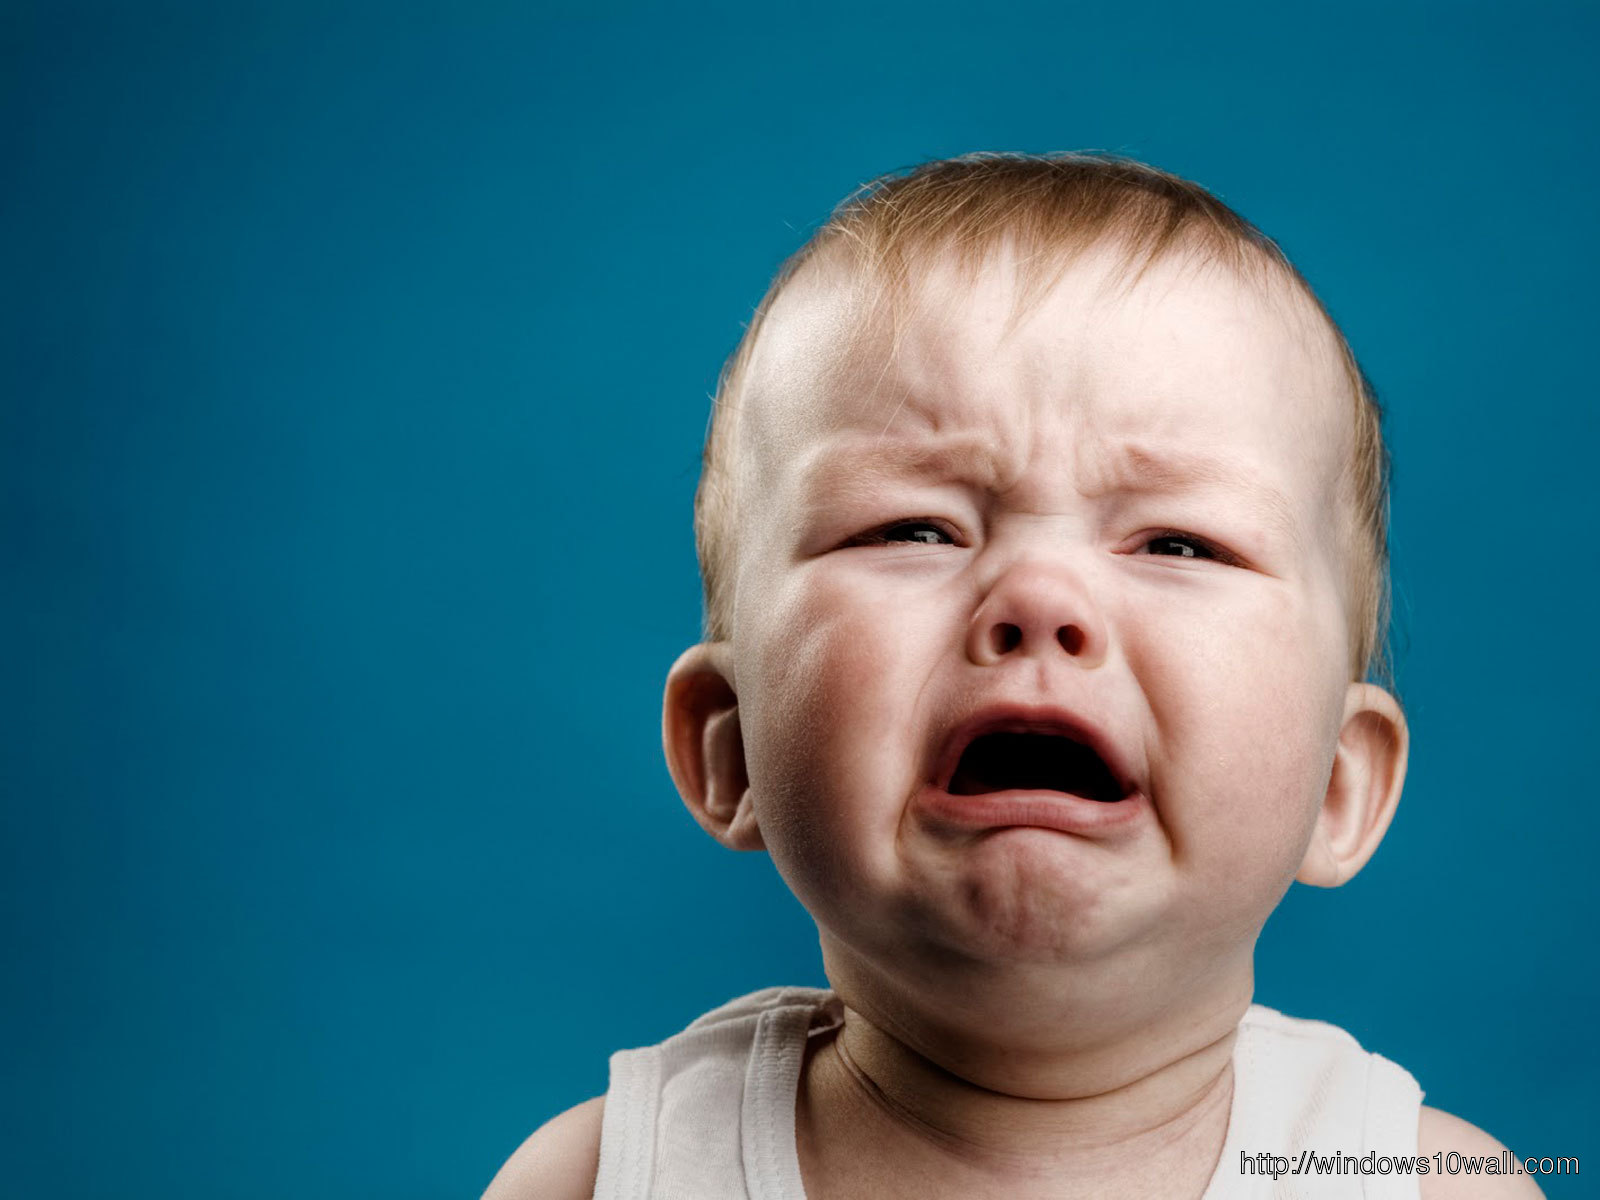 Funny Baby Crying Wallpaper